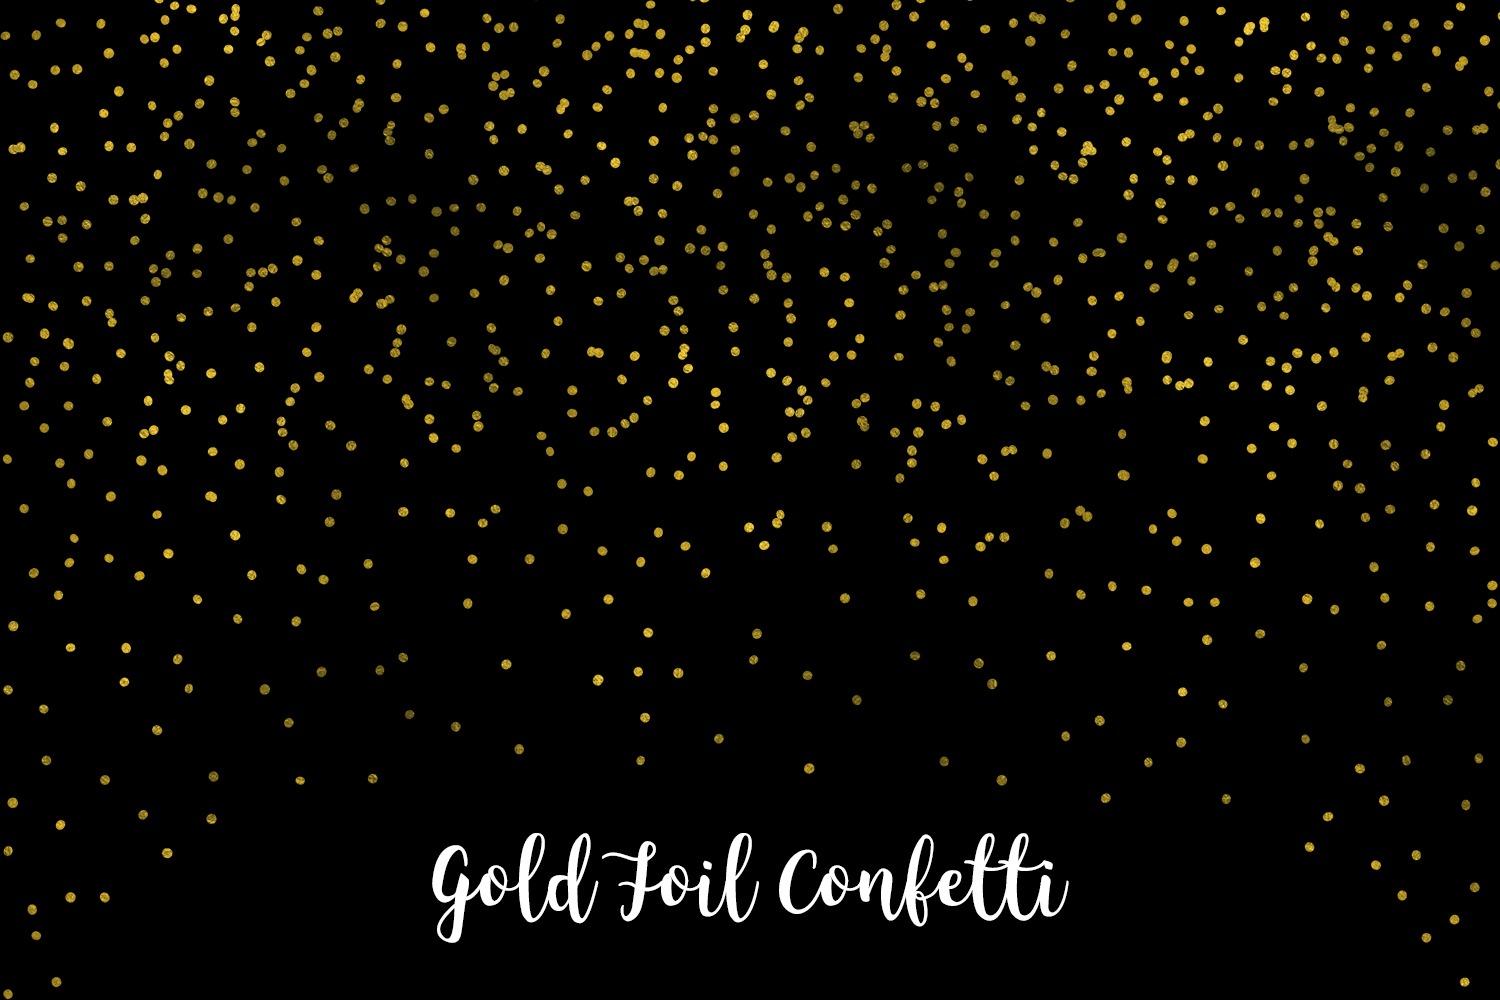 Gold Foil Confetti, Transparent PNG example image 6